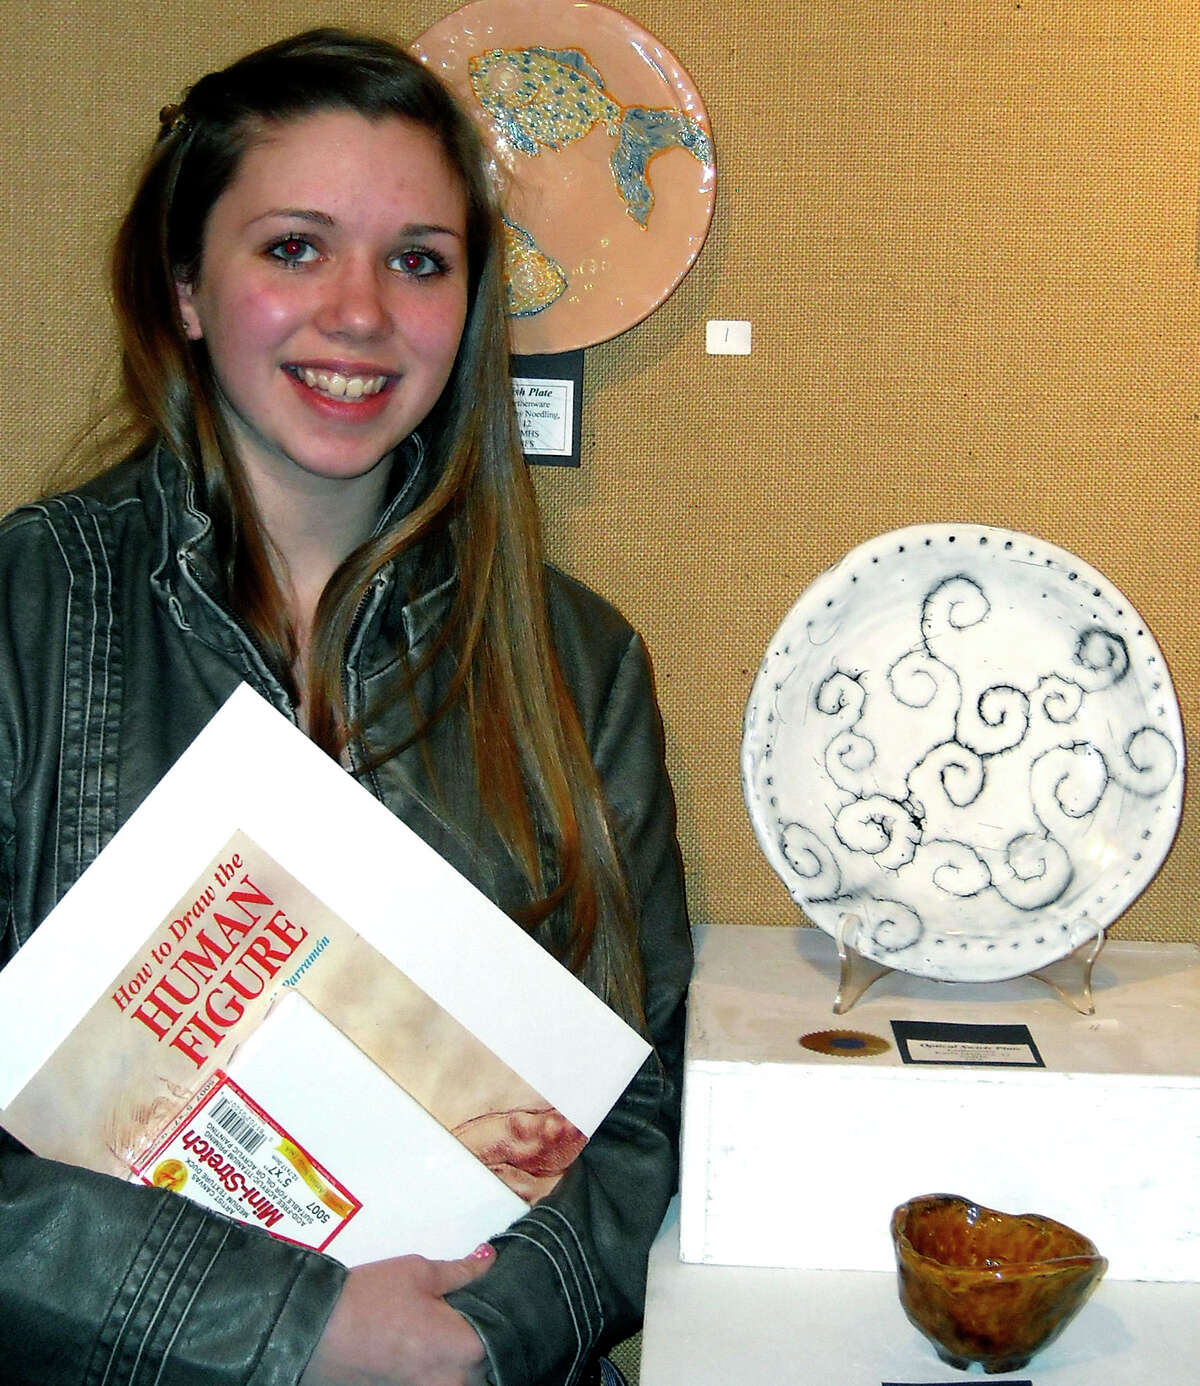 SPECTRUM/Twenty art students from New Milford High School recently participated in the Kent Art Association student show. Two were awarded prizes: senior Kayla Marlowe, above, who won an award for a wax resist plate, and freshman Taryssa Killian for a pastel. Courtesy of New Milford High School